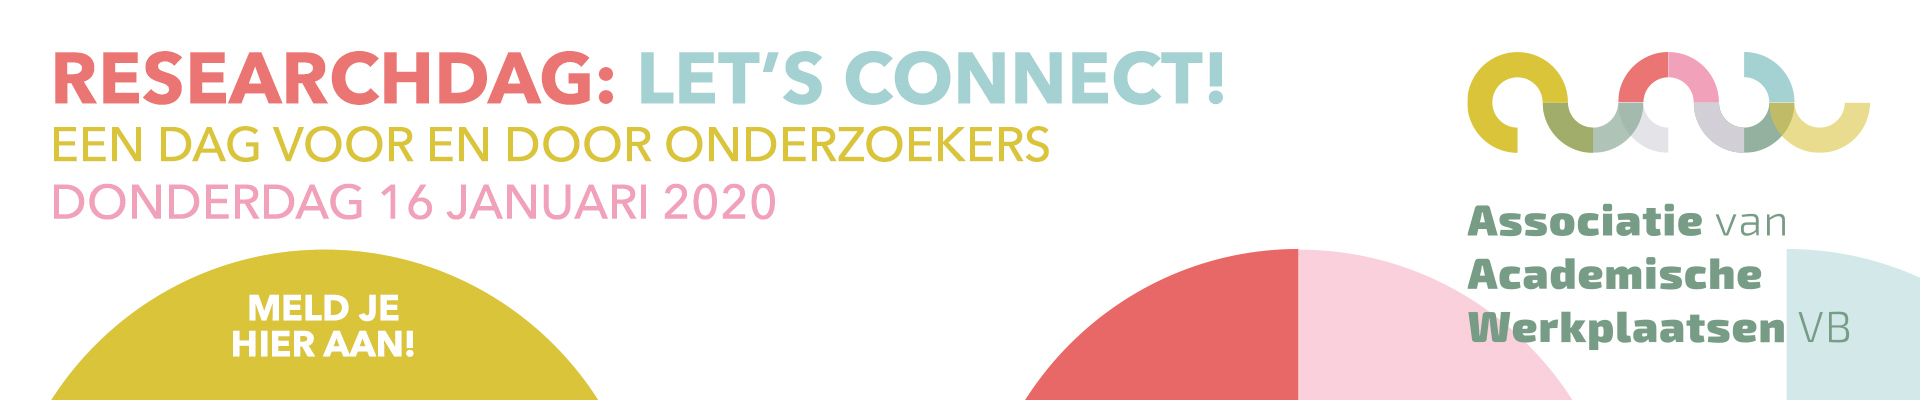 Researchdag 16-01-2020